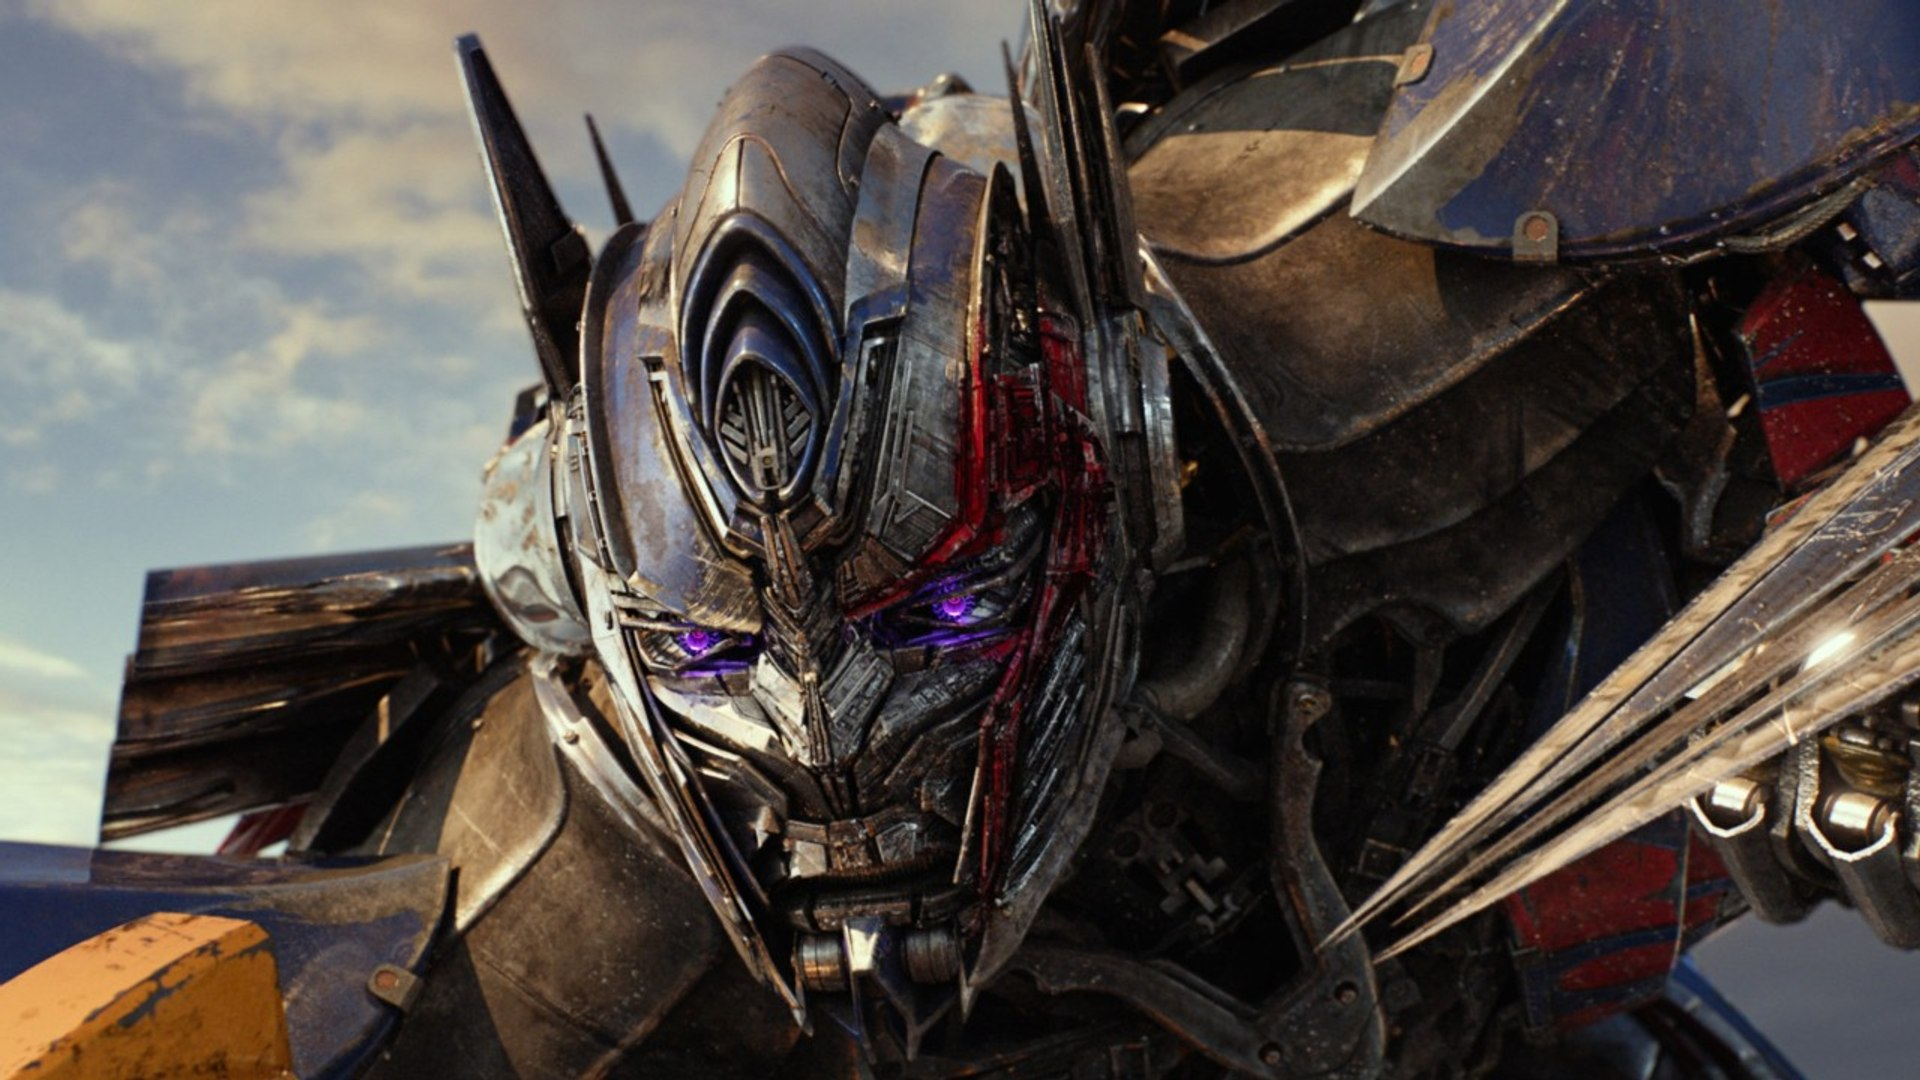 Transformers 5 Has Series Worst Box Office